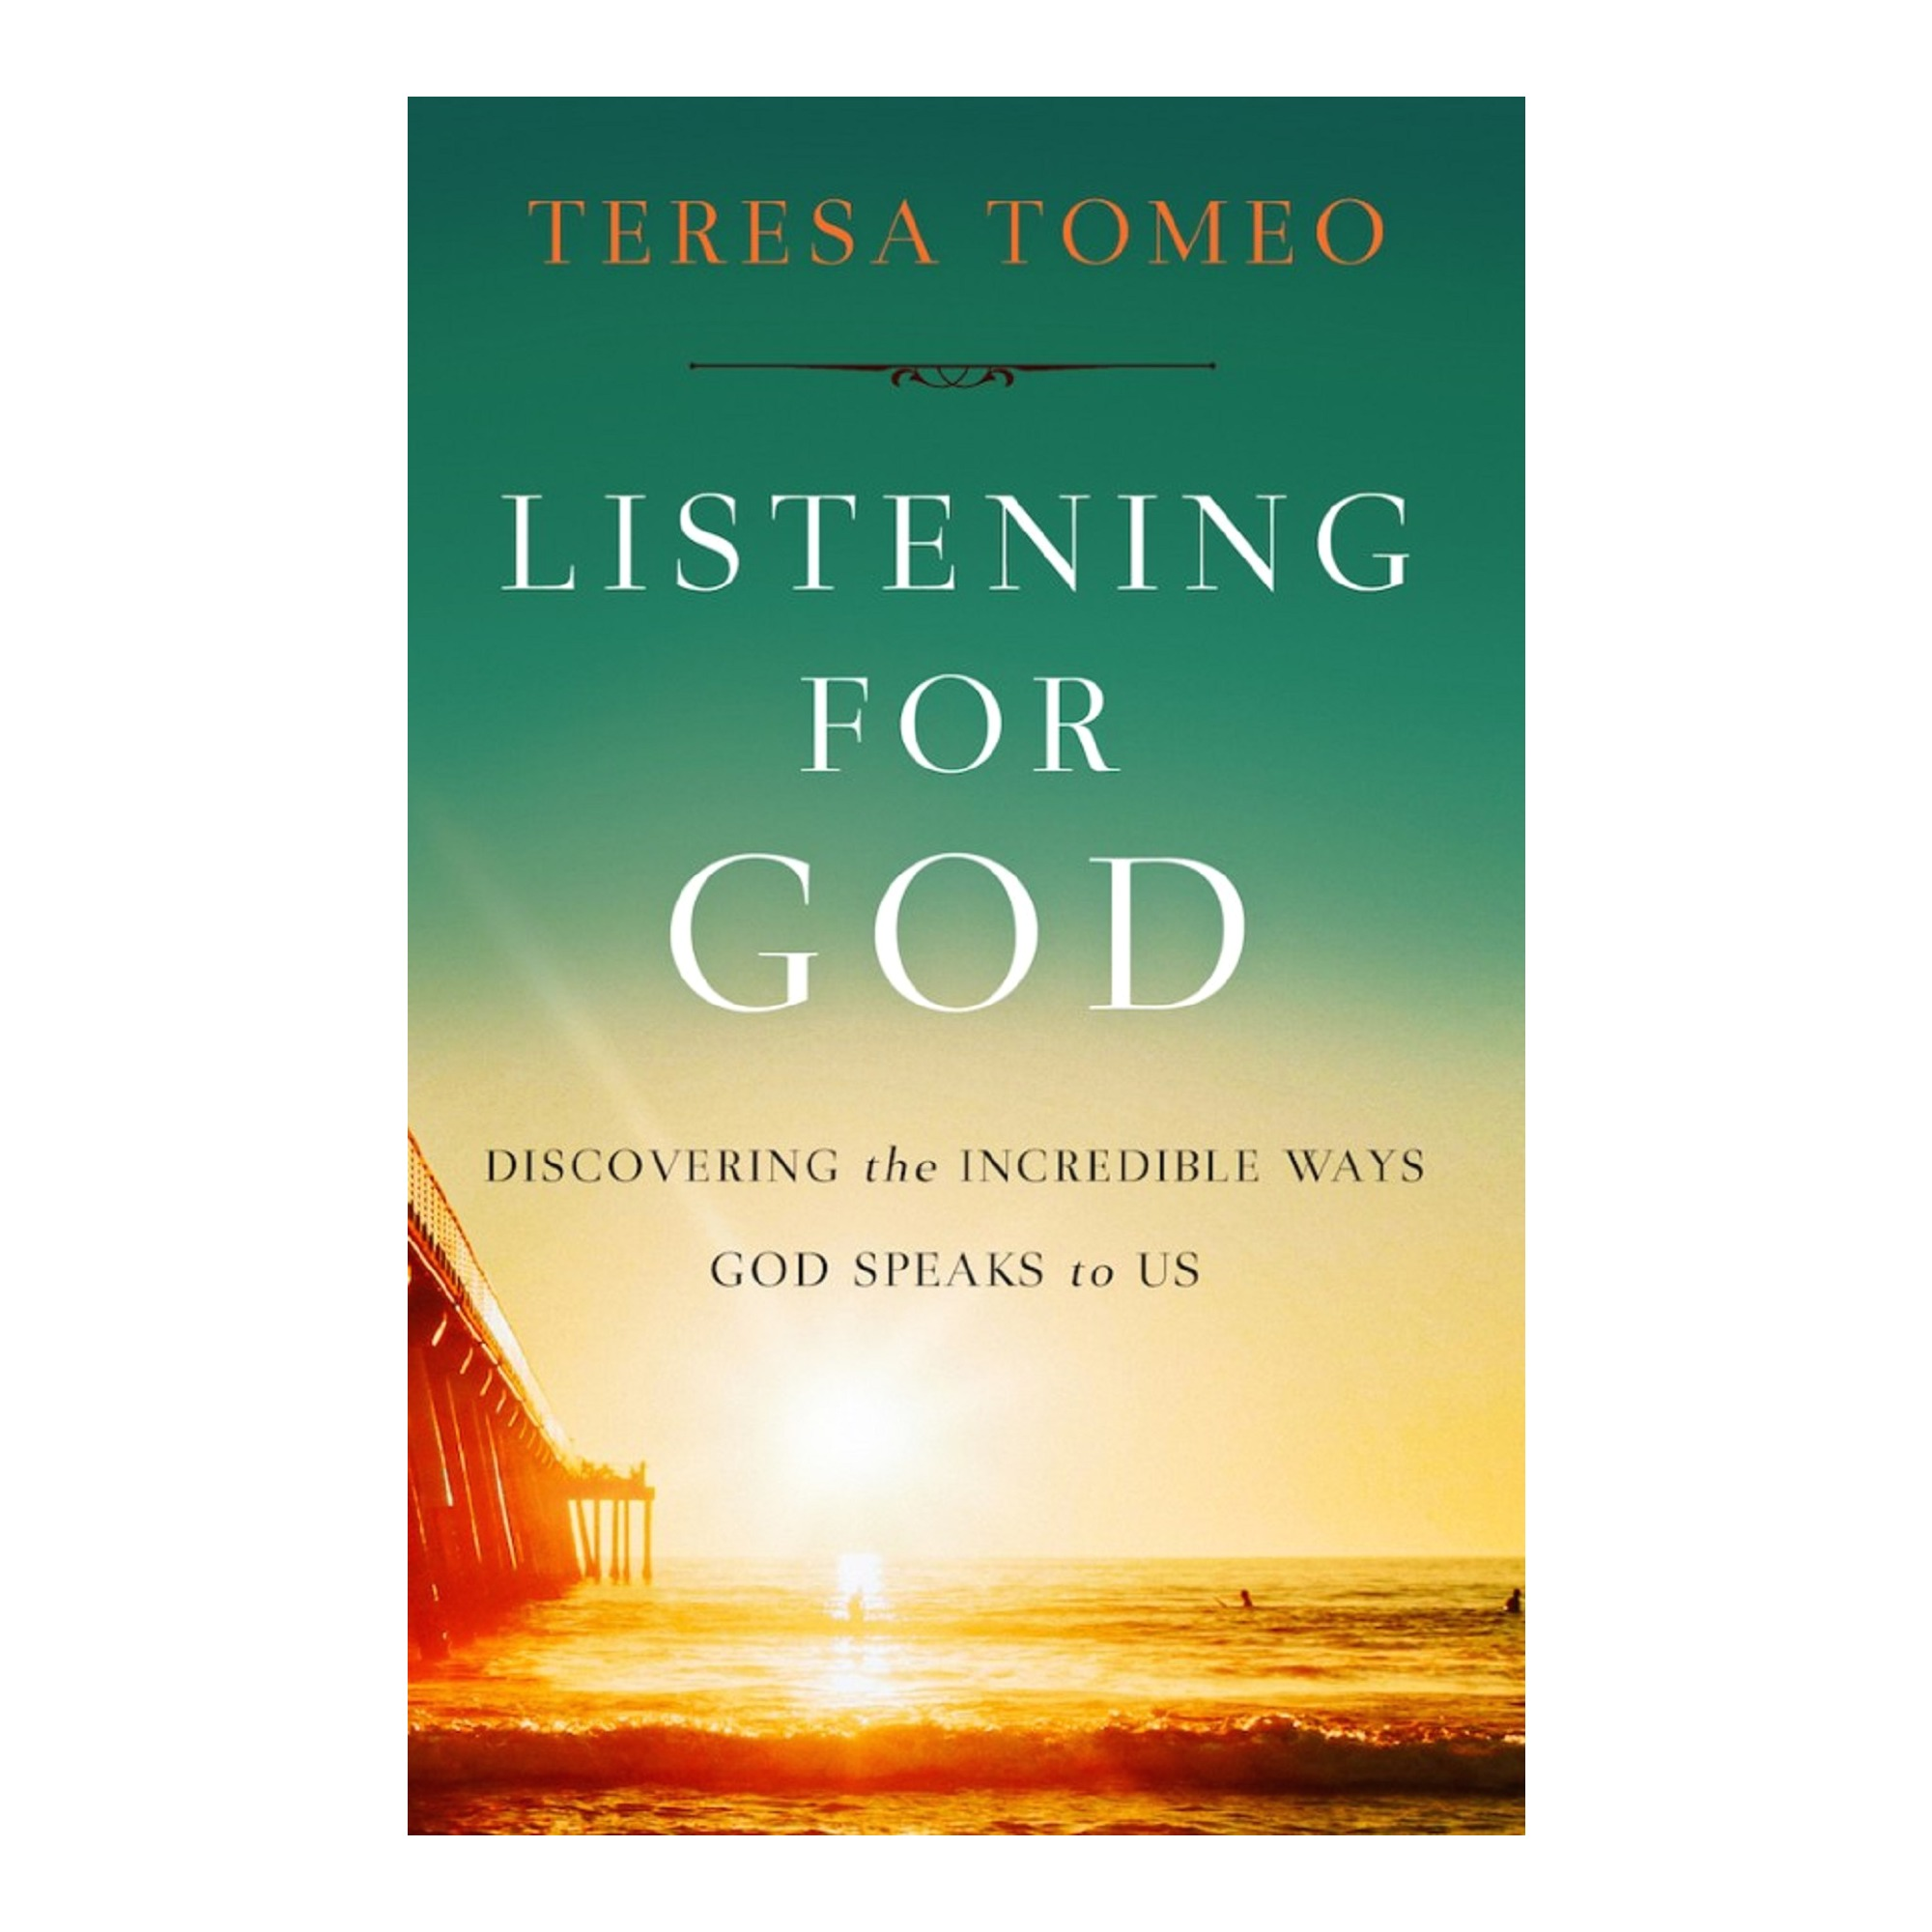 Listening for God by Teresa Tomeo